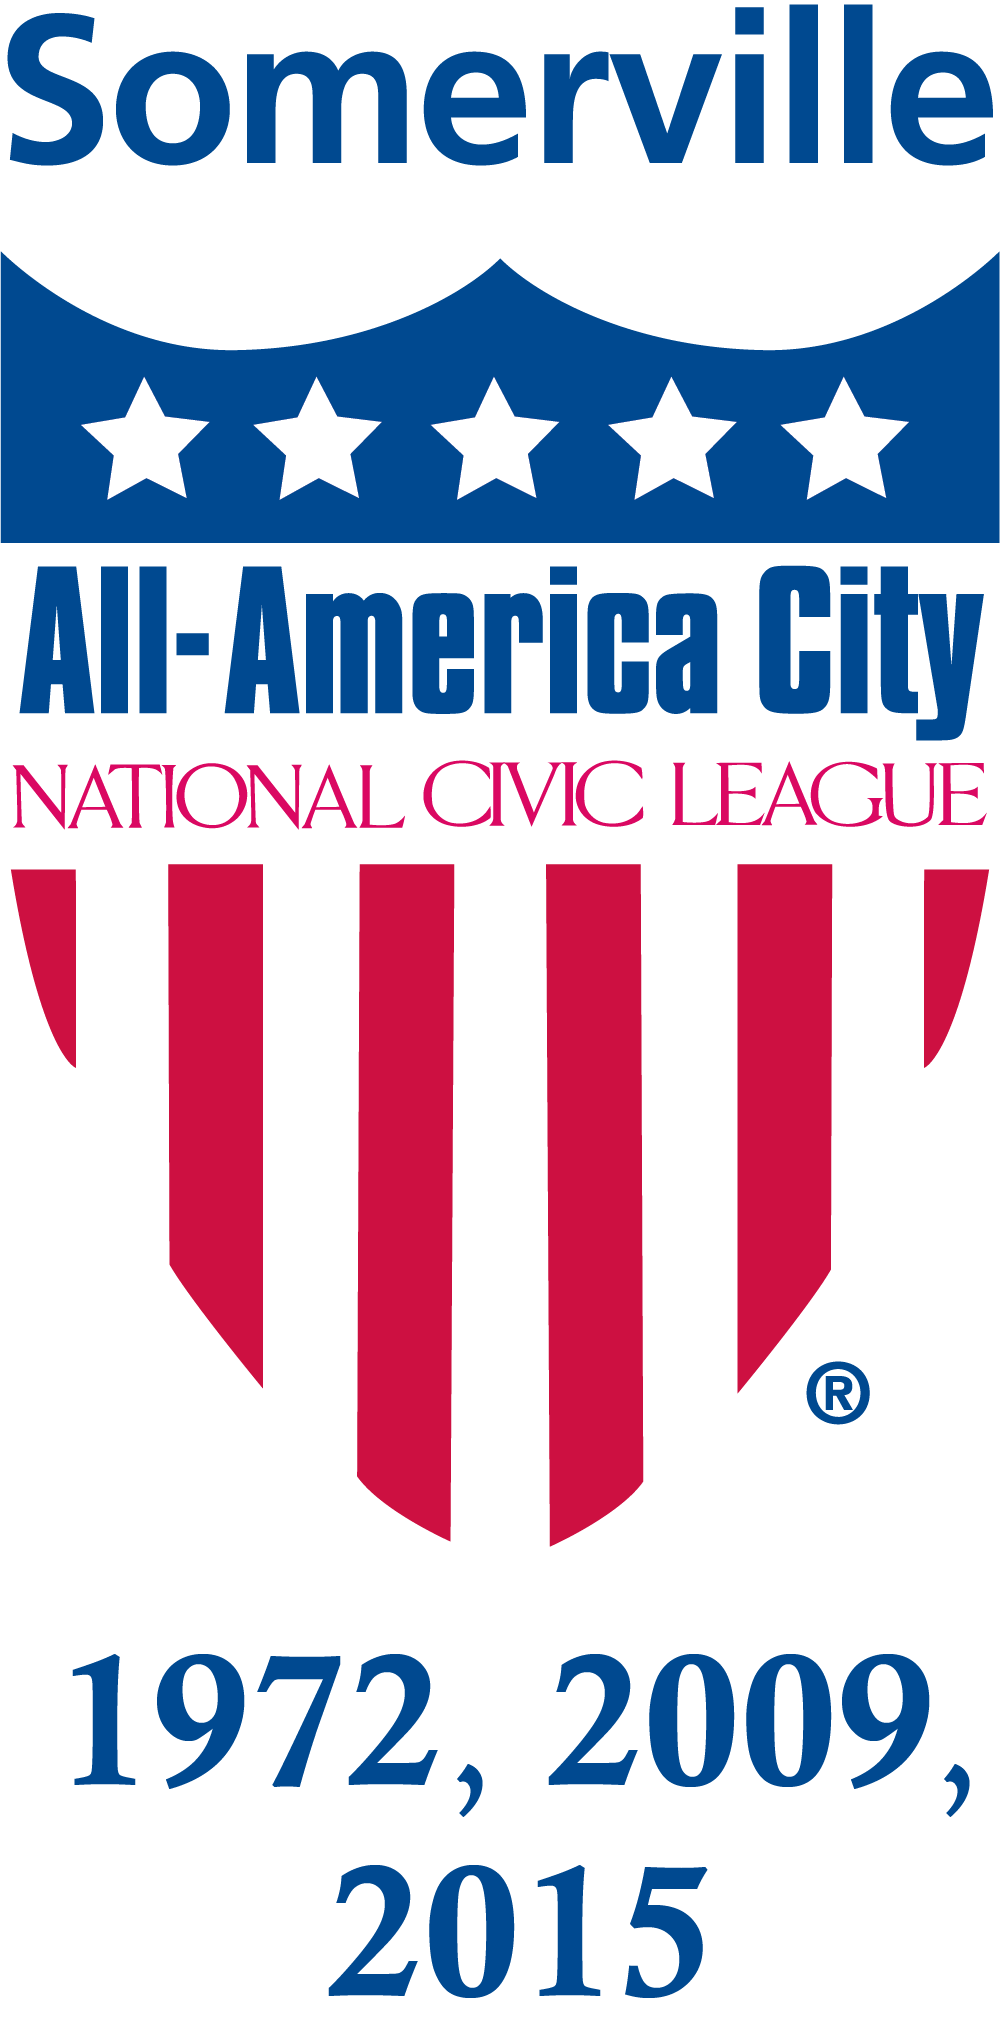 All-America City Award - National Civic League: The City of Somerville (1972, 2009, 2015)